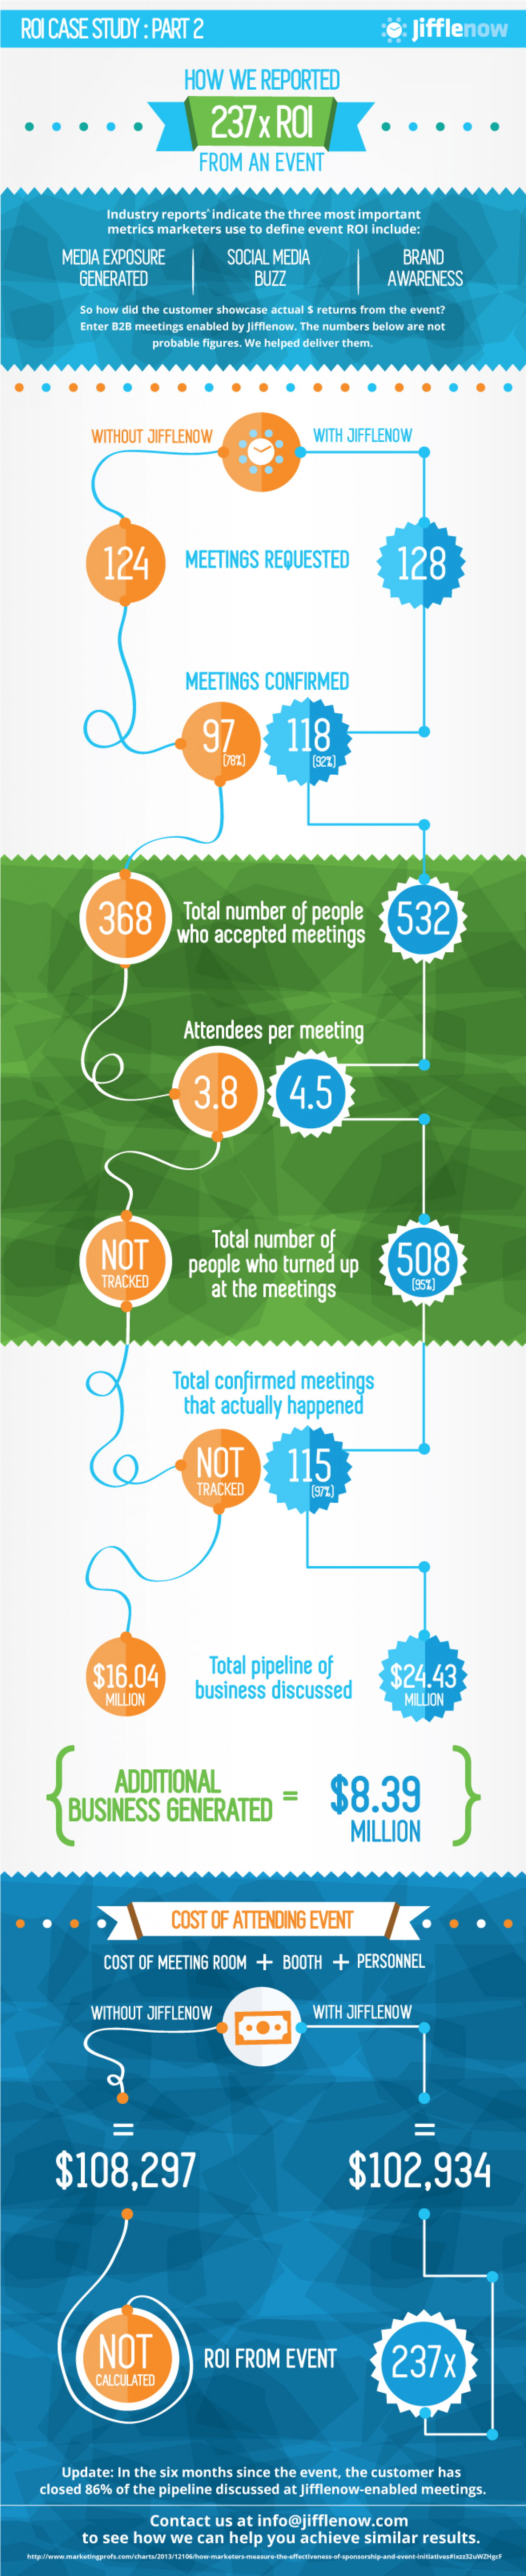 Benefits of measuring event ROI Infographic